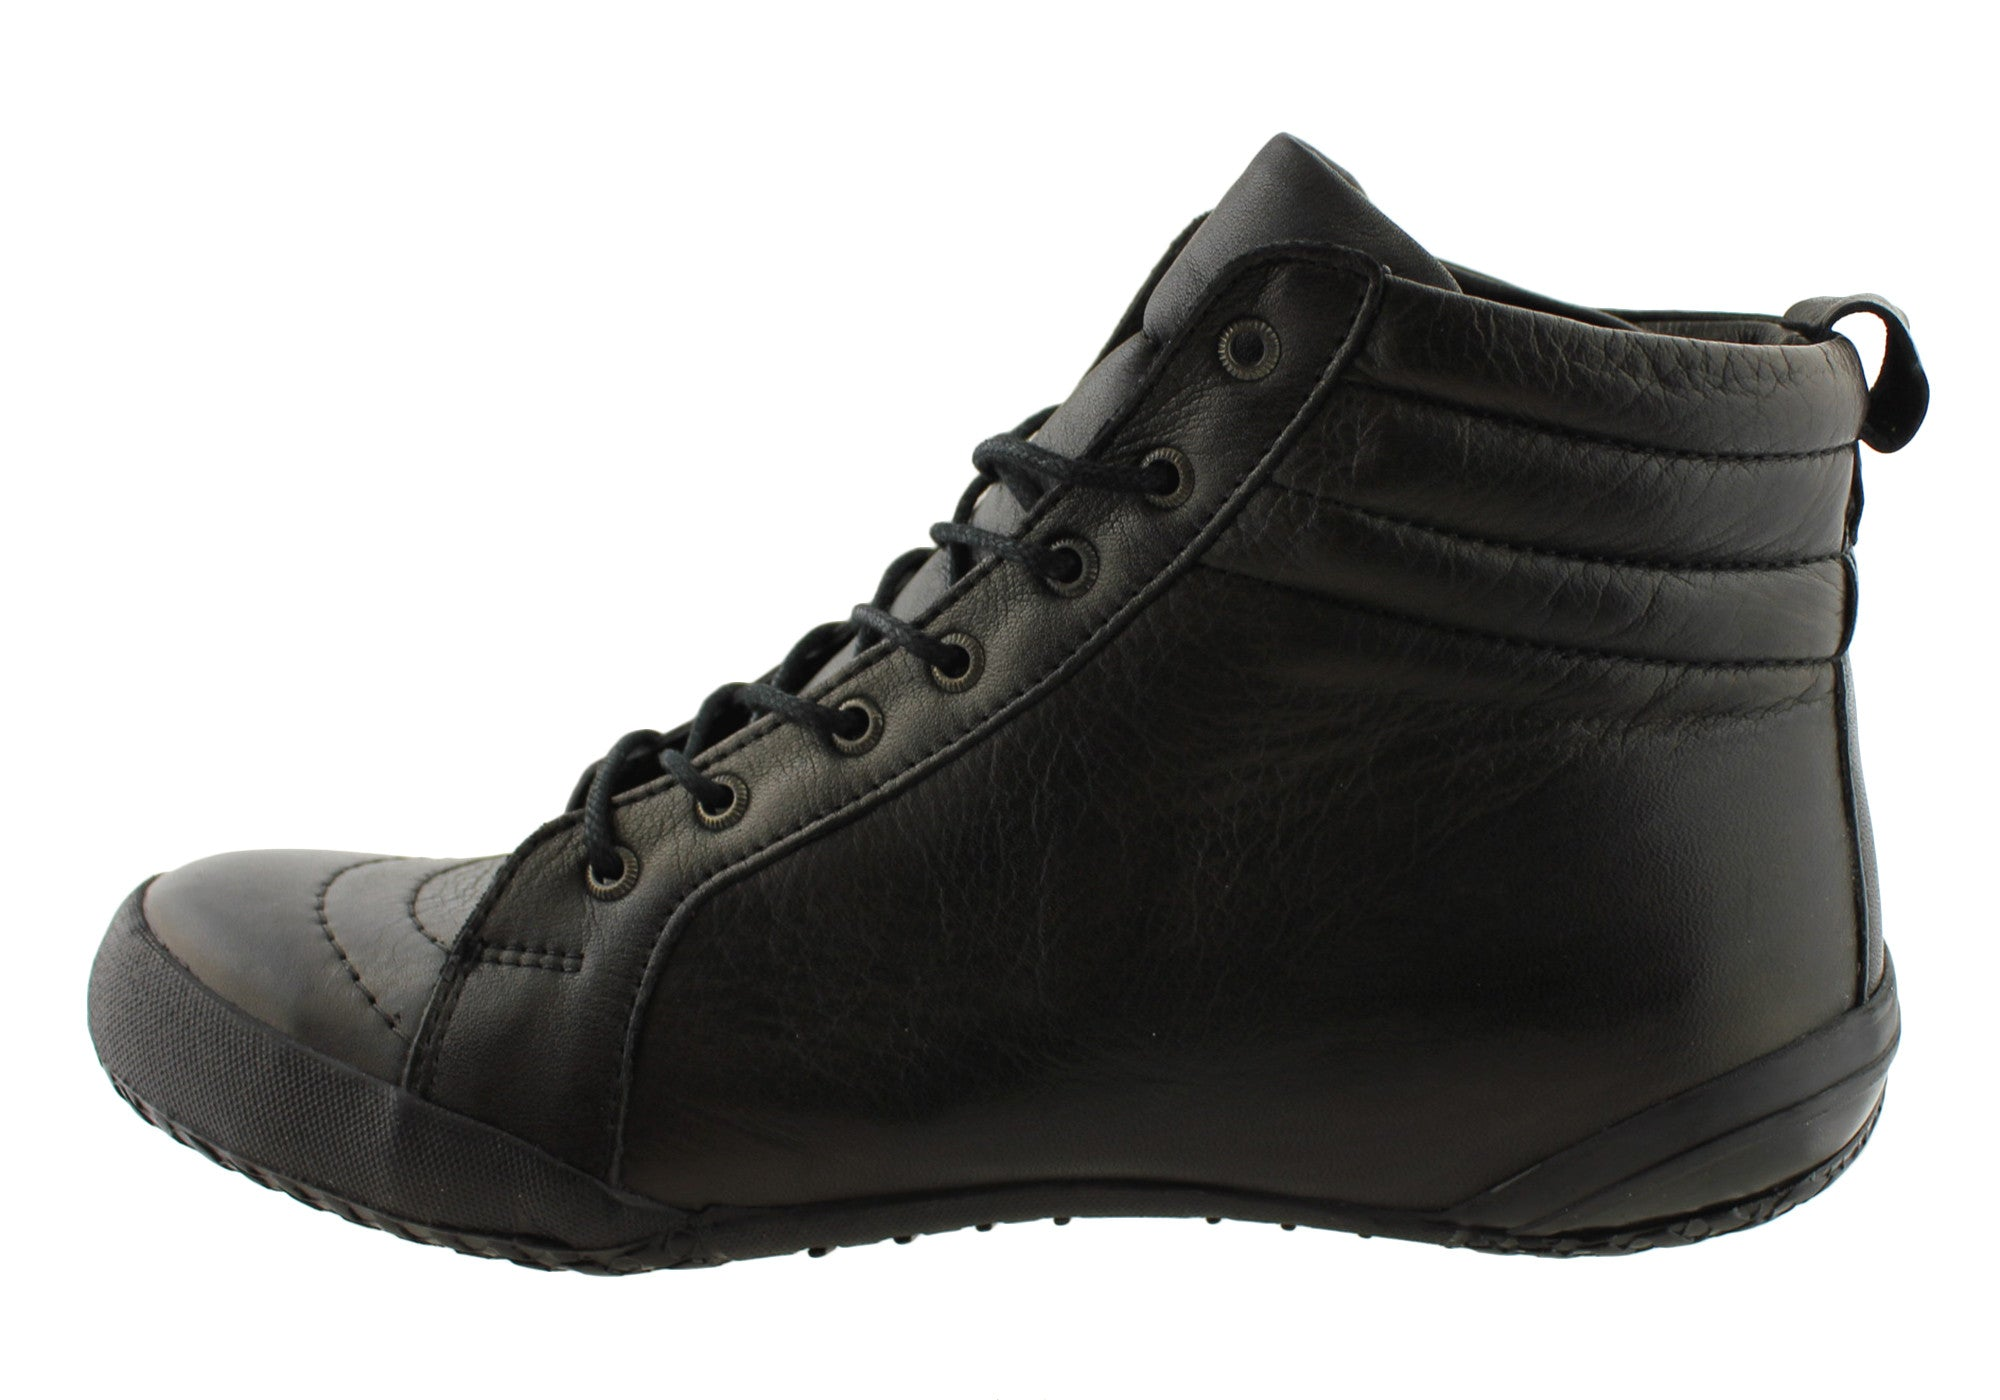 Cabello Comfort Womens Leather Lace Up Ankle Boots